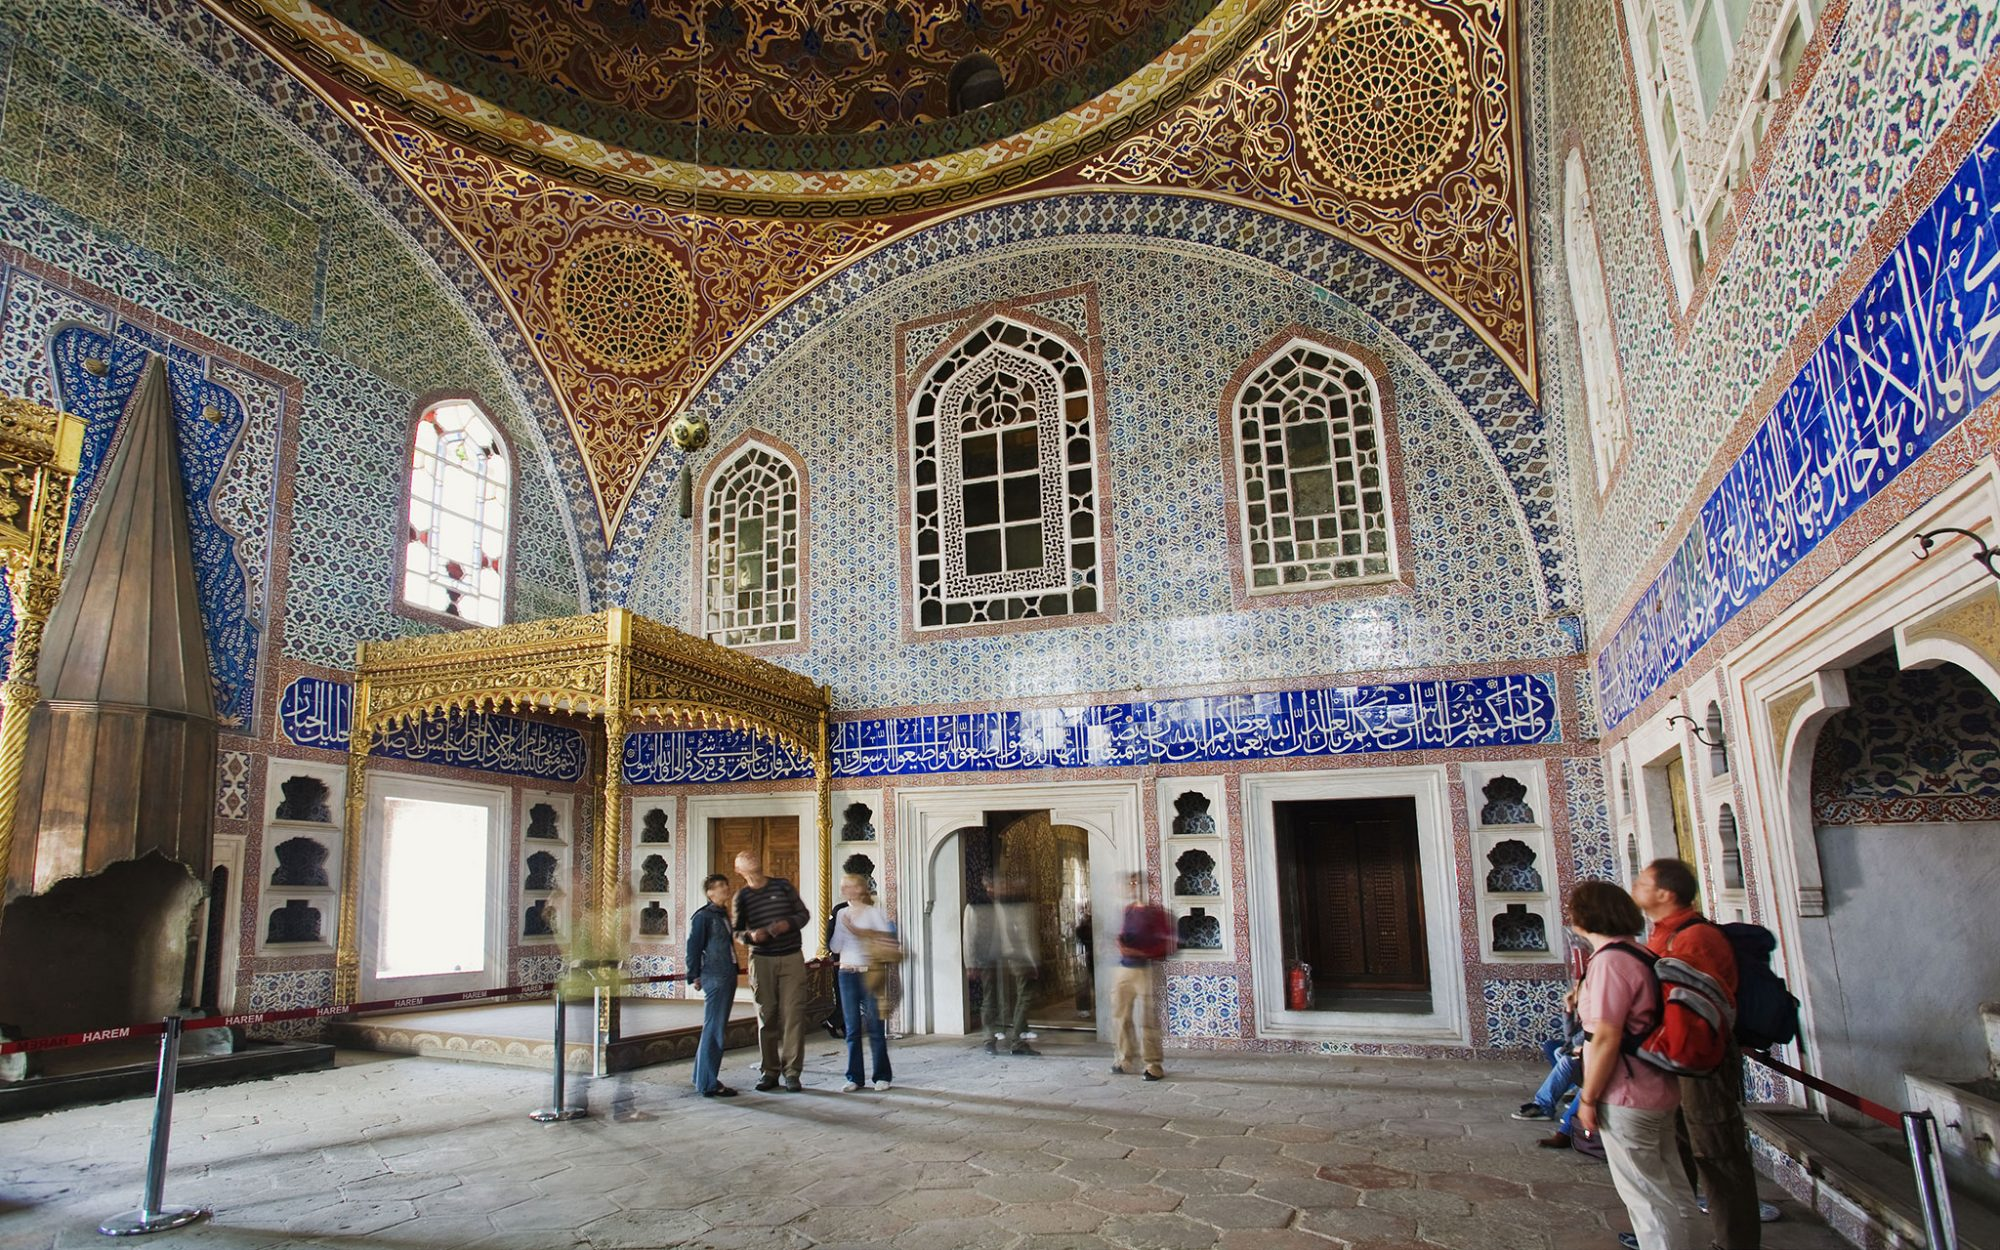 World's Most-Visited Castles: No. 5 Topkapi Palace, Istanbul